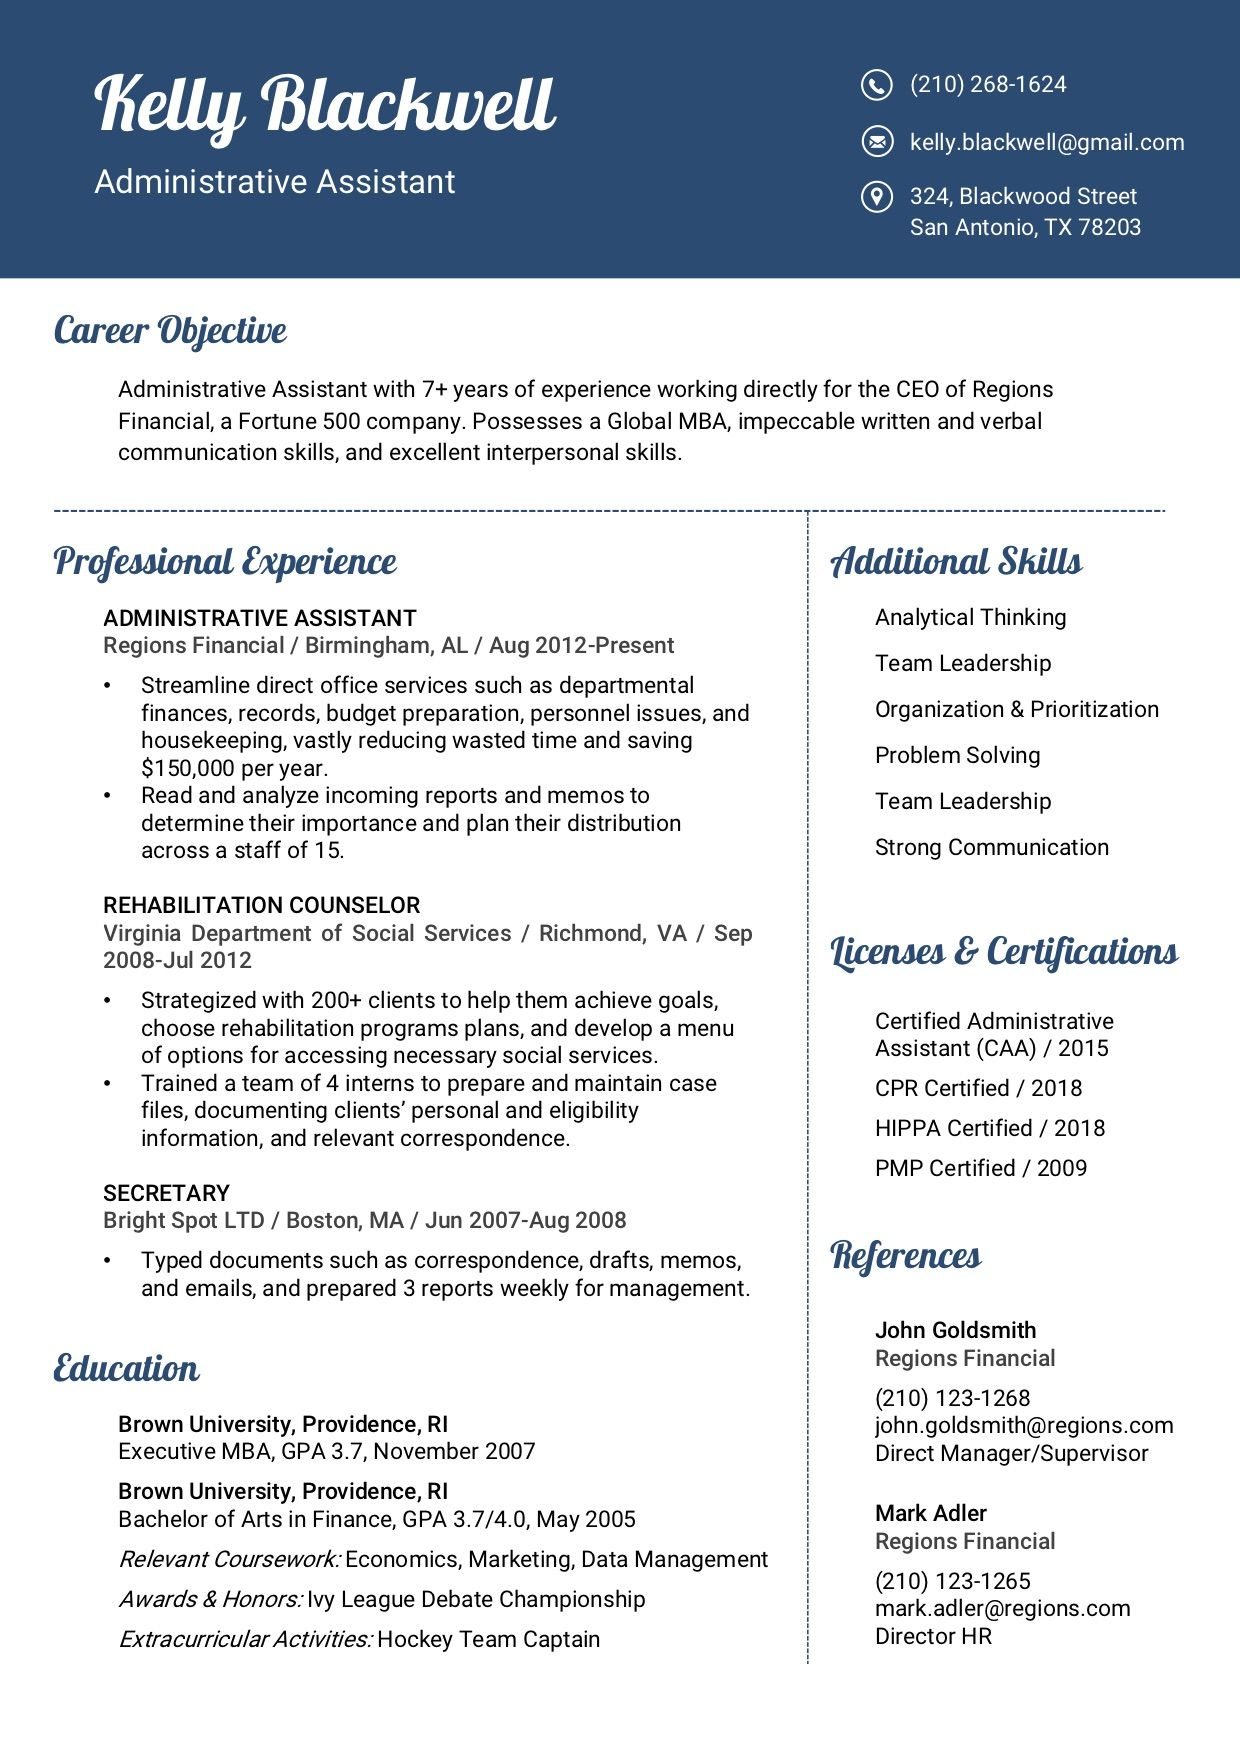 Resume Template 8b Rc Verbal Communication Skills Resume Template Professional Resume Template